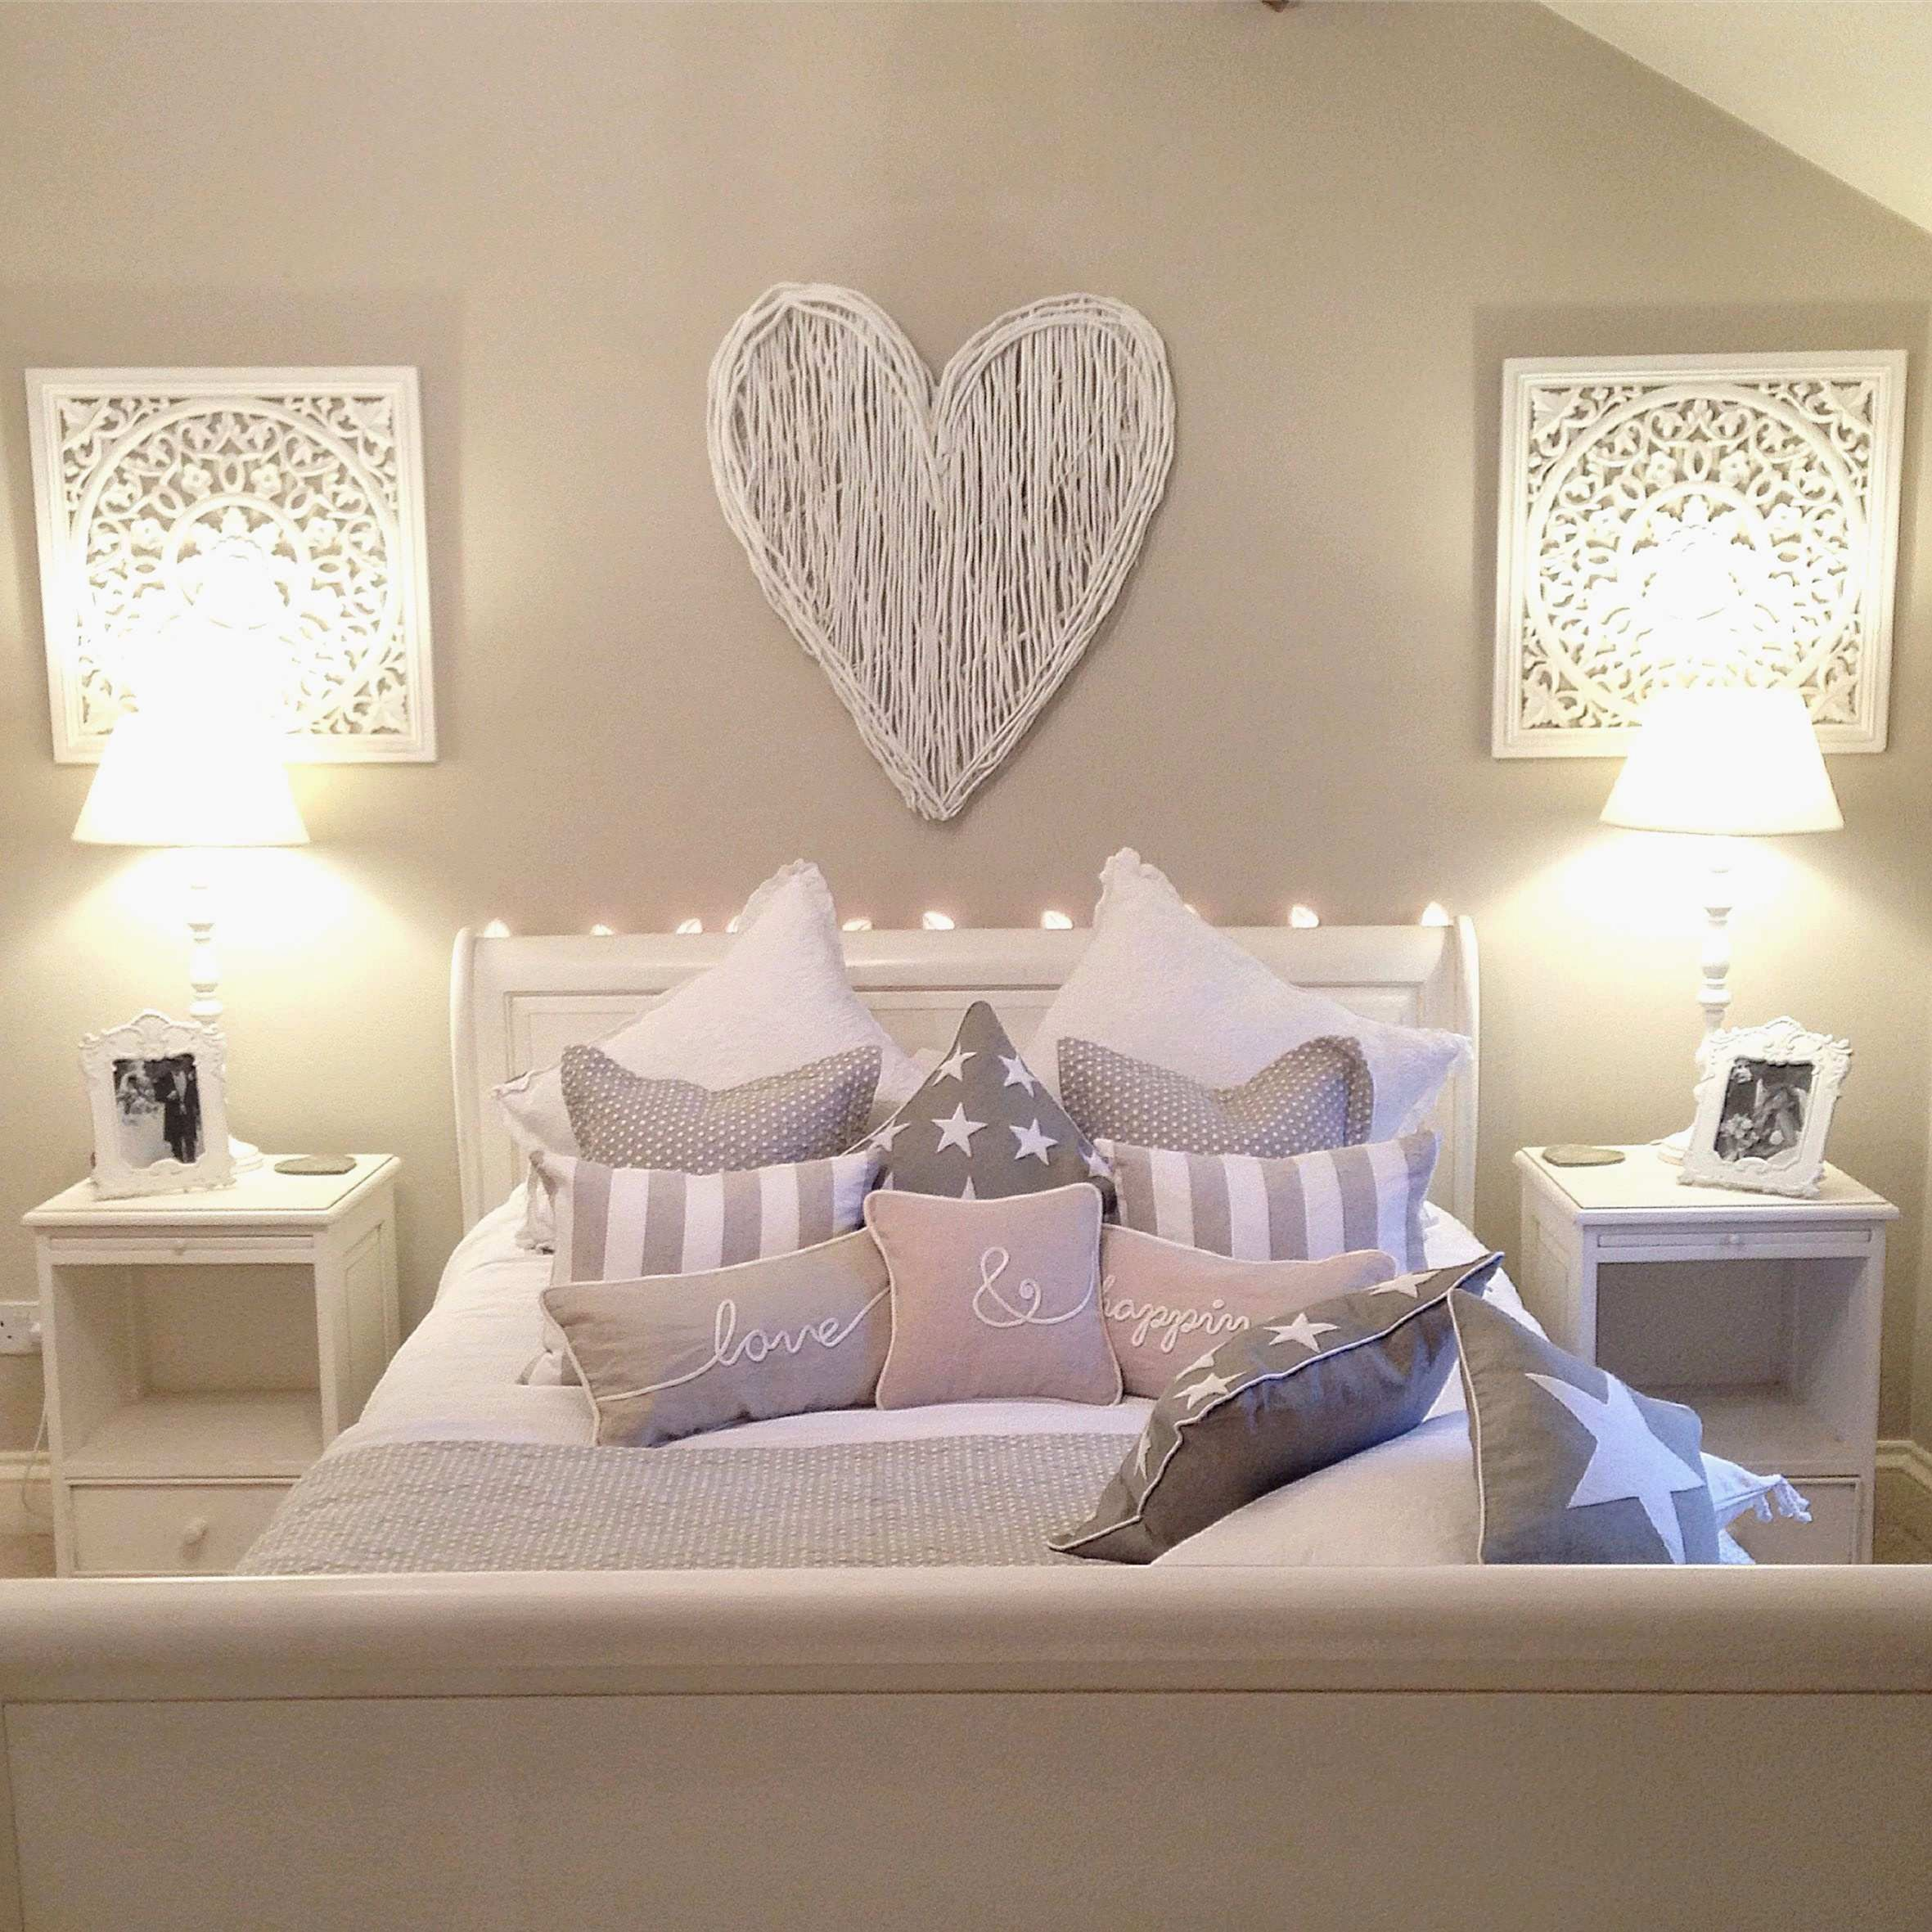 10 Amazing Unique Bedroom Decor Ideas You Must Have In 2020 In